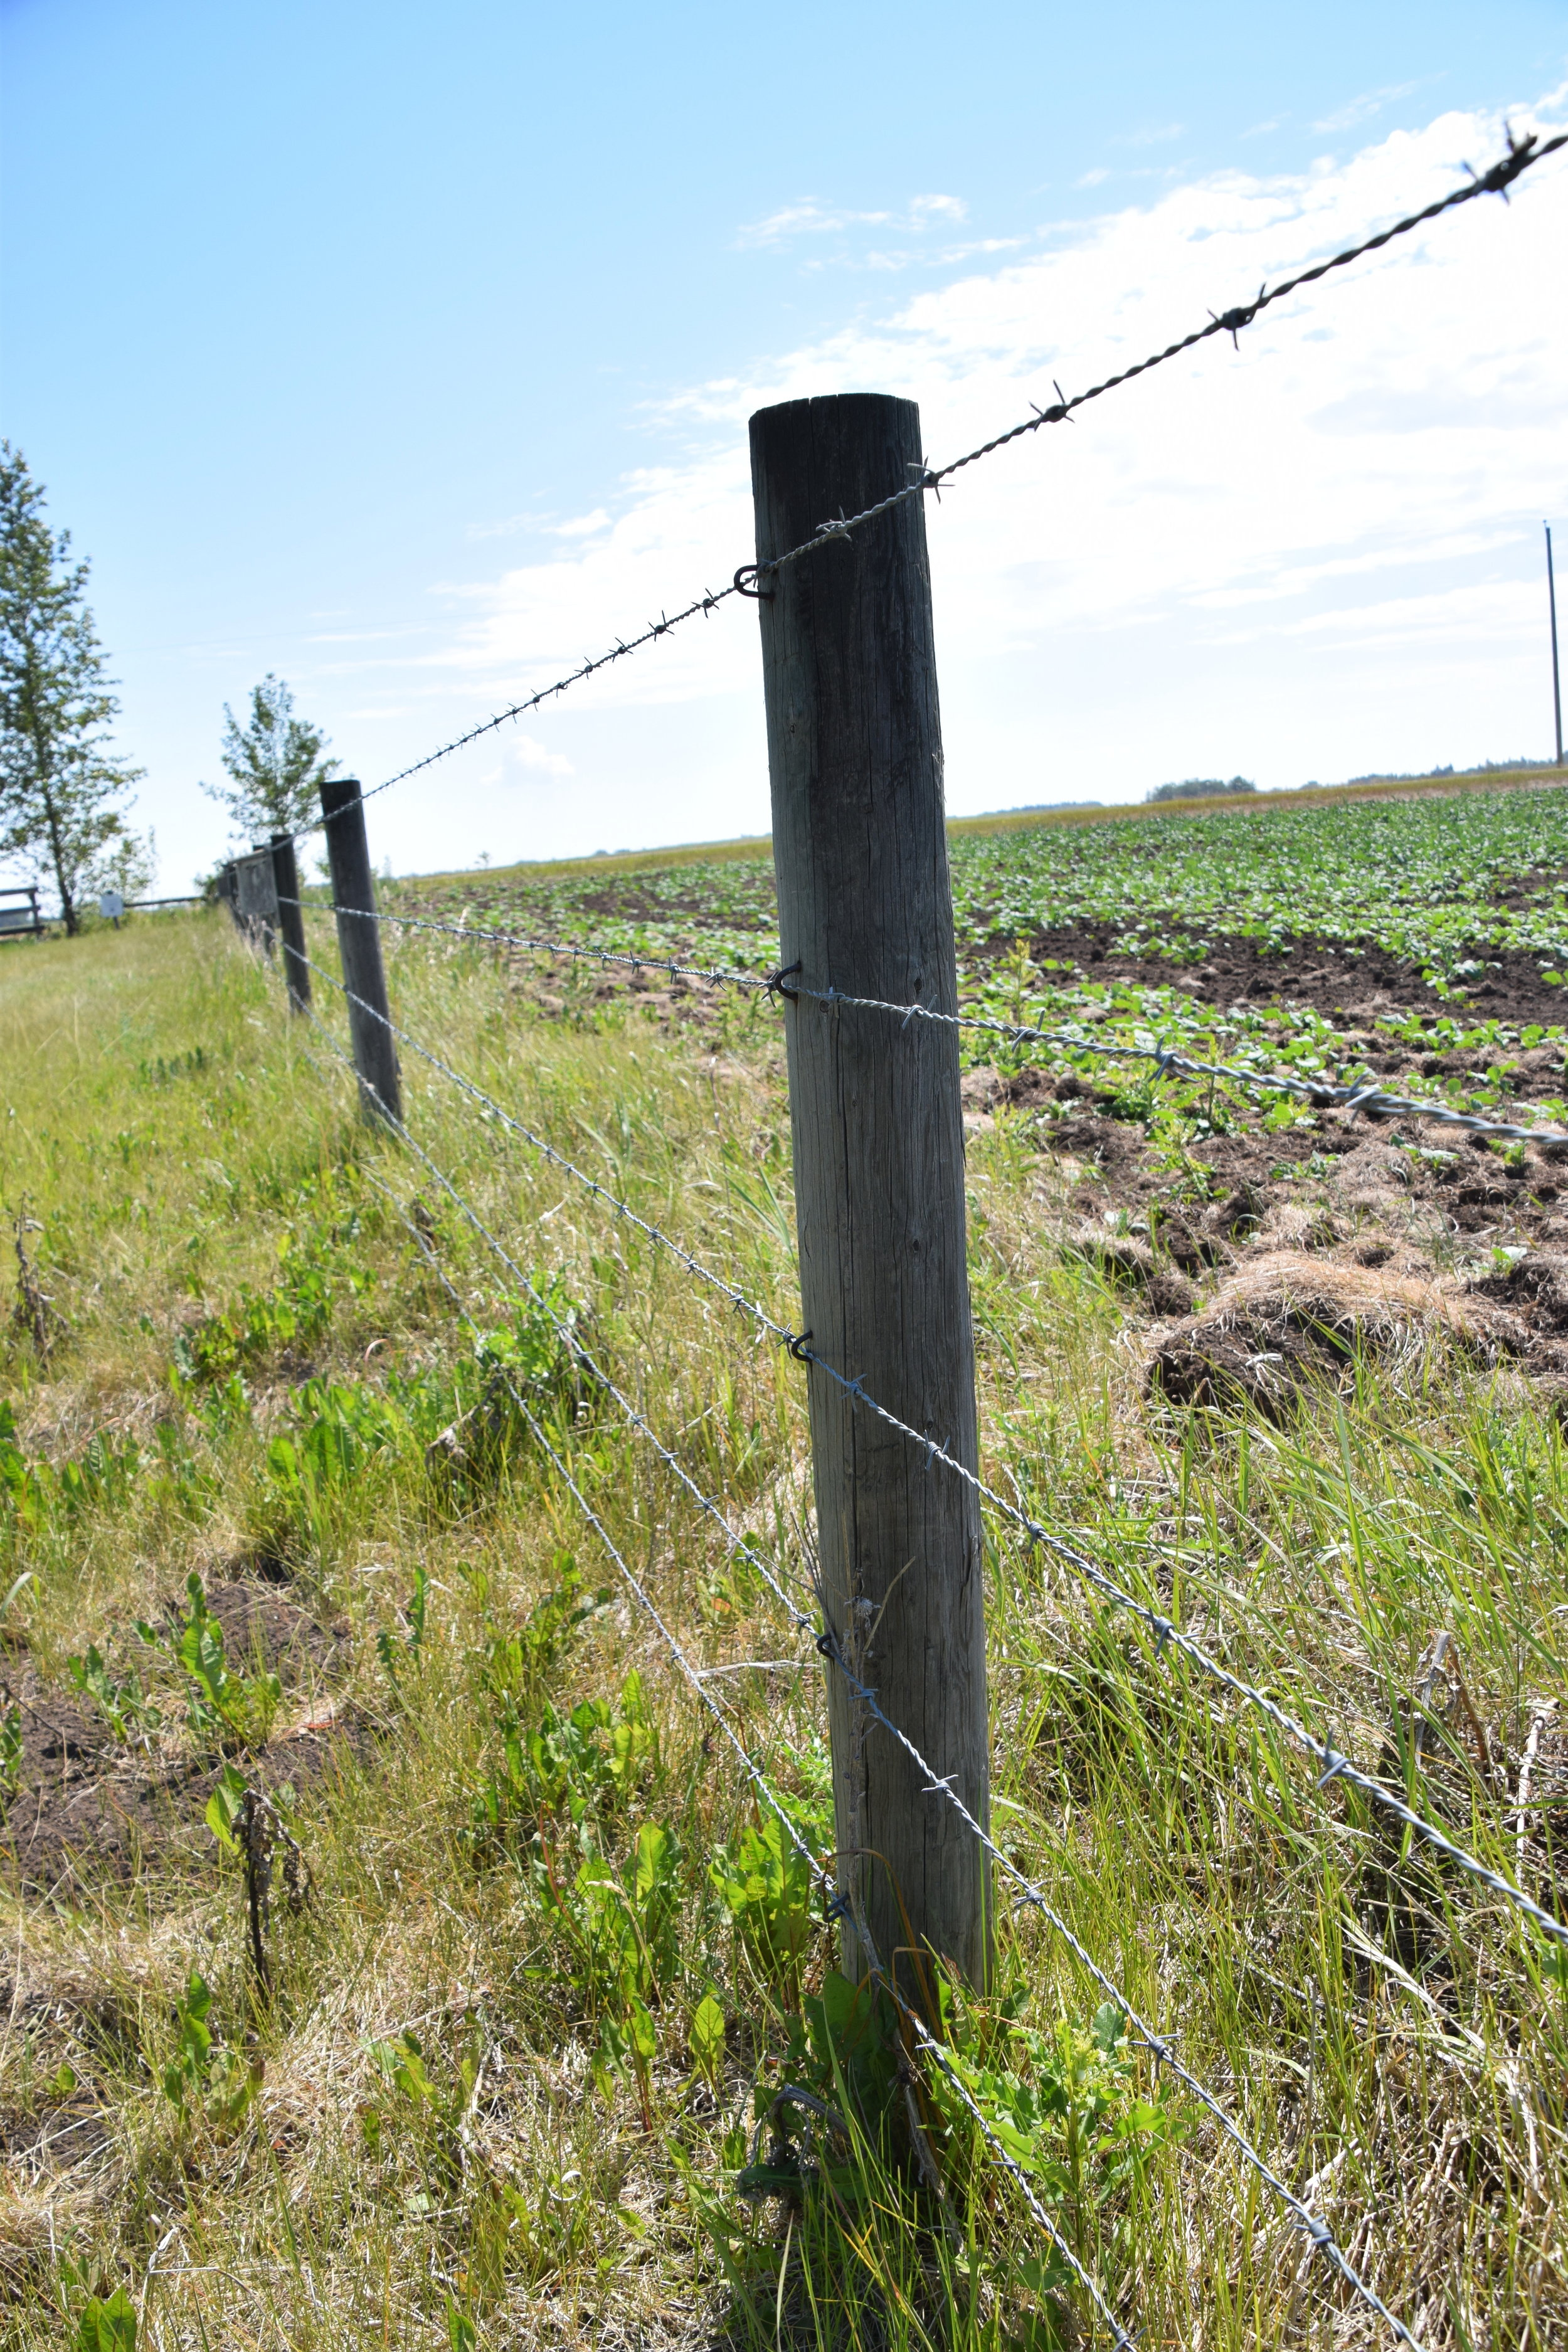 This five-strand barbed wire fence poses a hazard to wildlife.